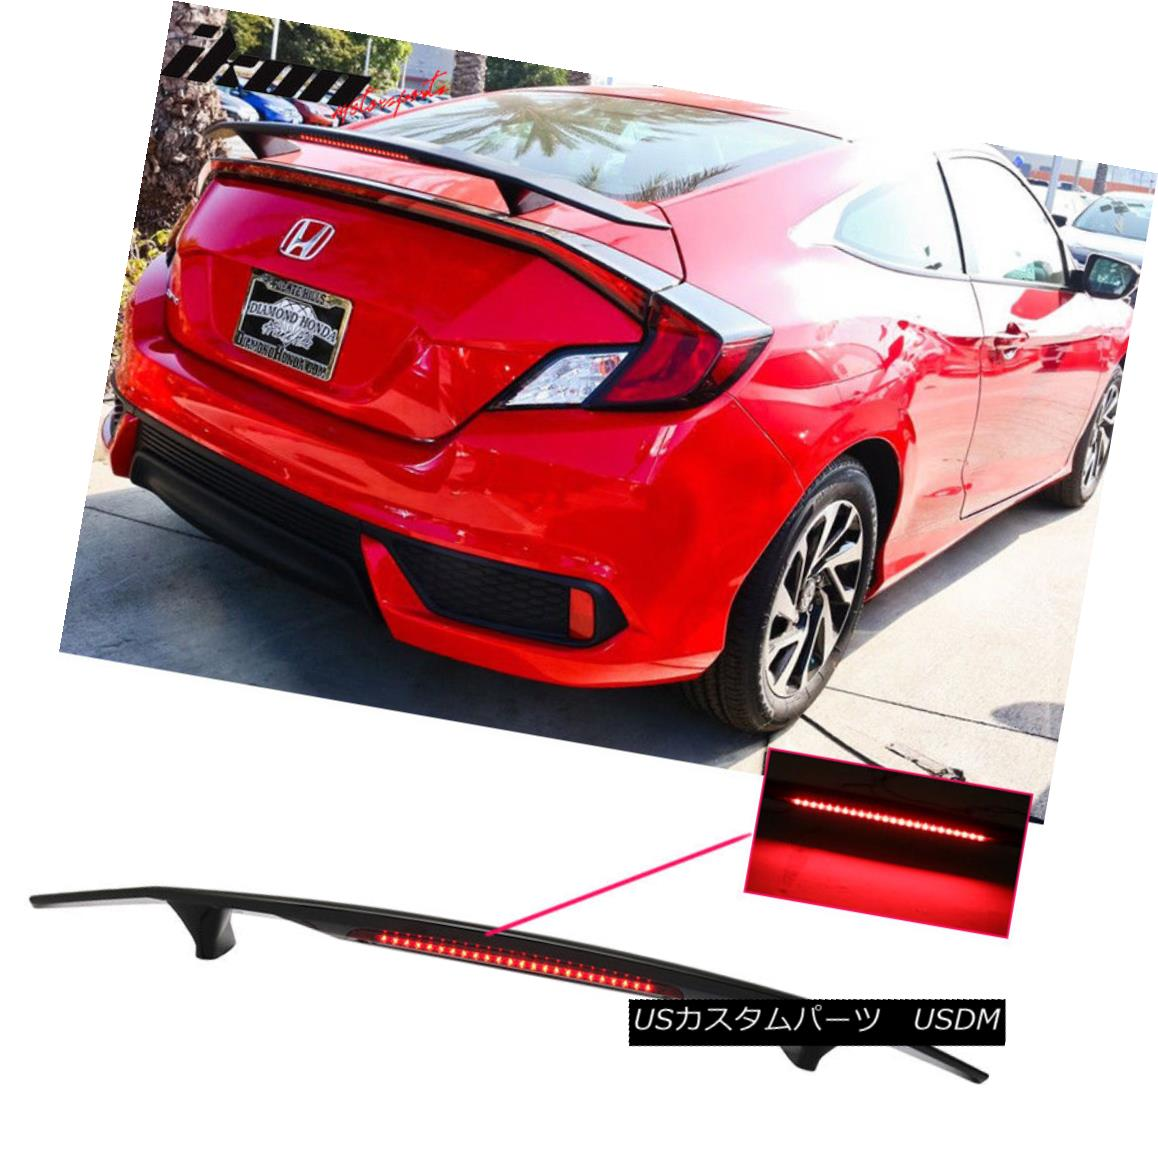 エアロパーツ Fits 16-18 Civic Coupe 2Dr Trunk Spoiler Si Sport Wing & LED - Glossy Black ABS 16-18シビッククーペに適合2DrトランクスポイラーSi Sport Wing& LED - Glossy Black ABS